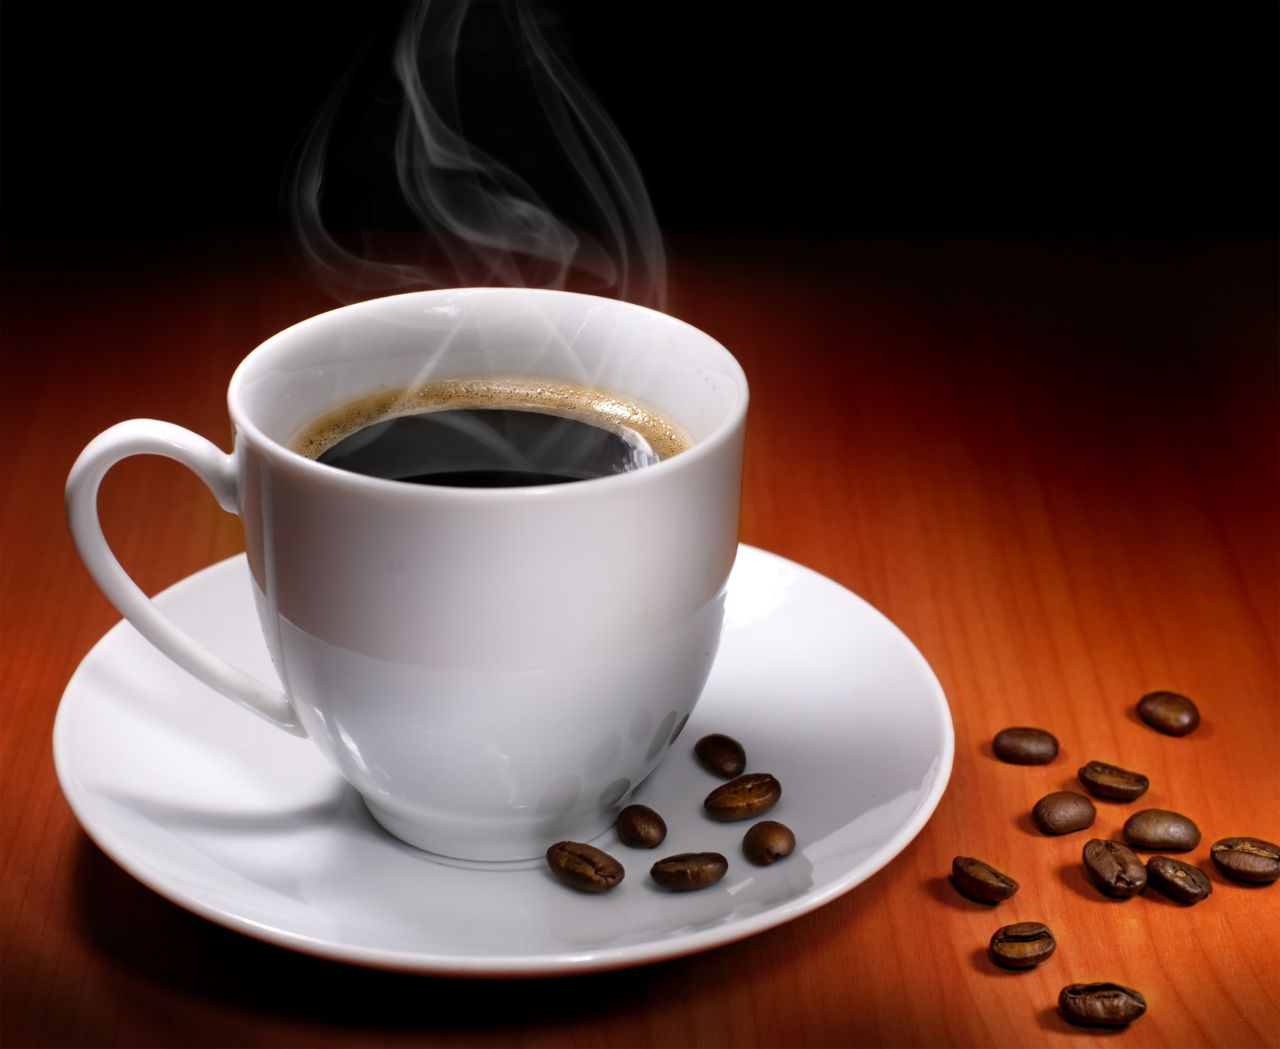 Do you like your coffee black as night? Then you're probably an old-school purist who likes to keep things simple. You're patient and efficient, but you can also be quiet, moody, and resistant to change.